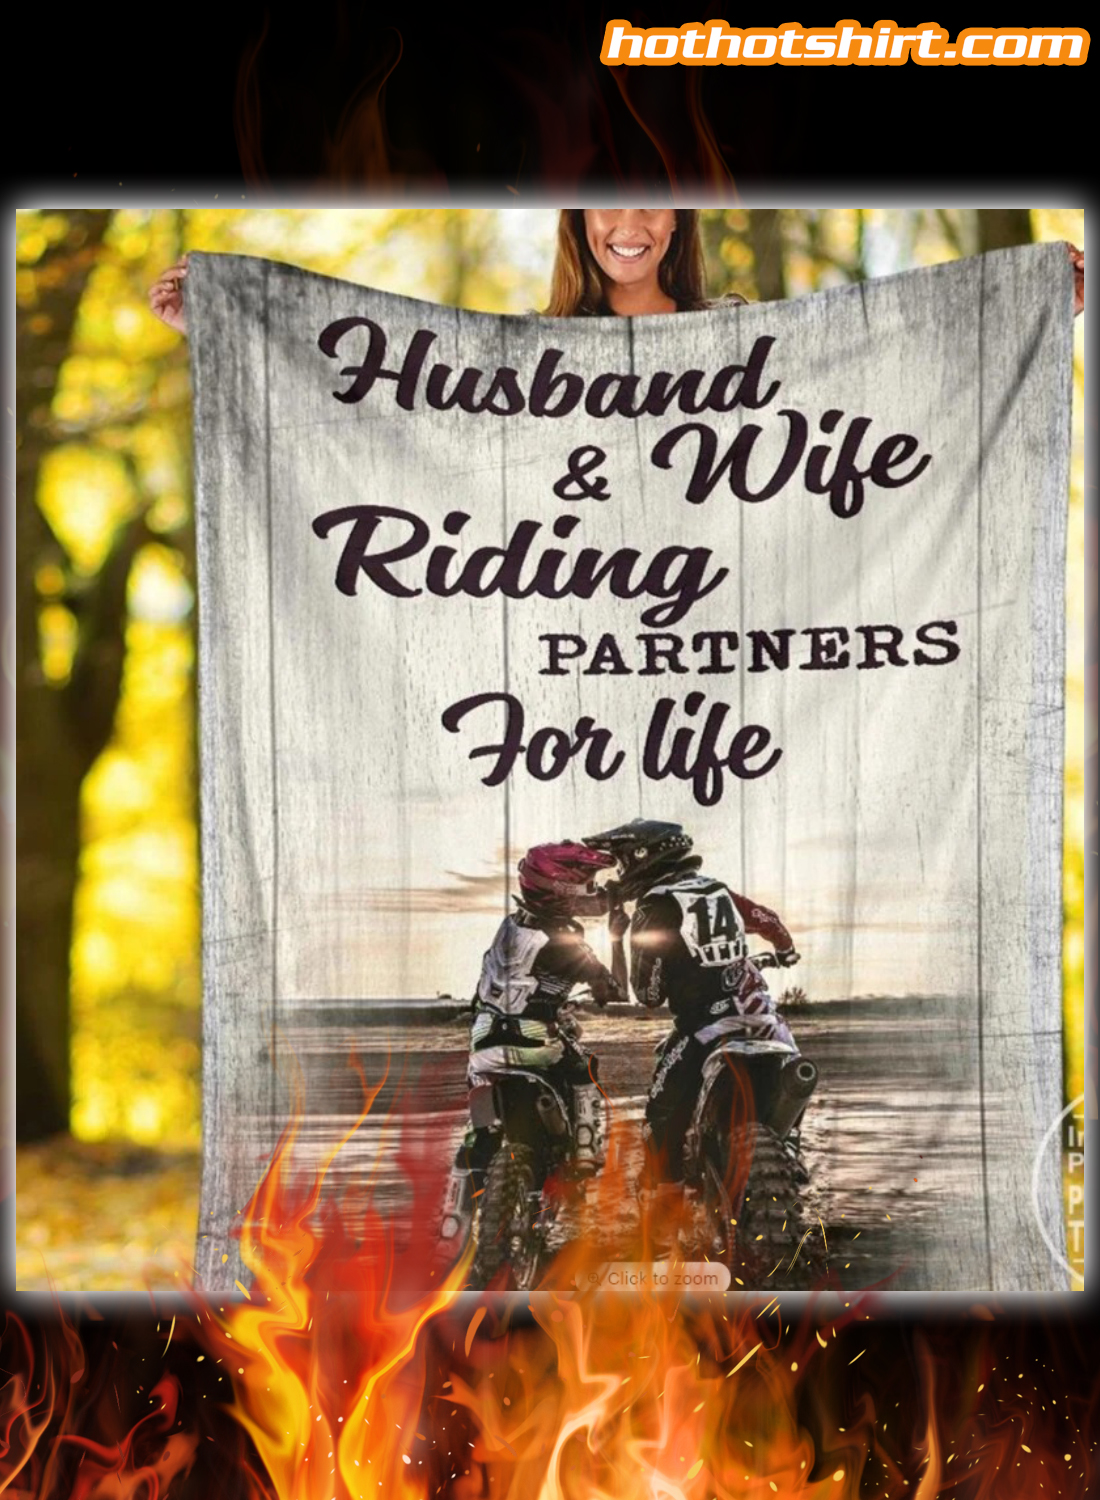 Motocross husband and wife riding partners for life blanket